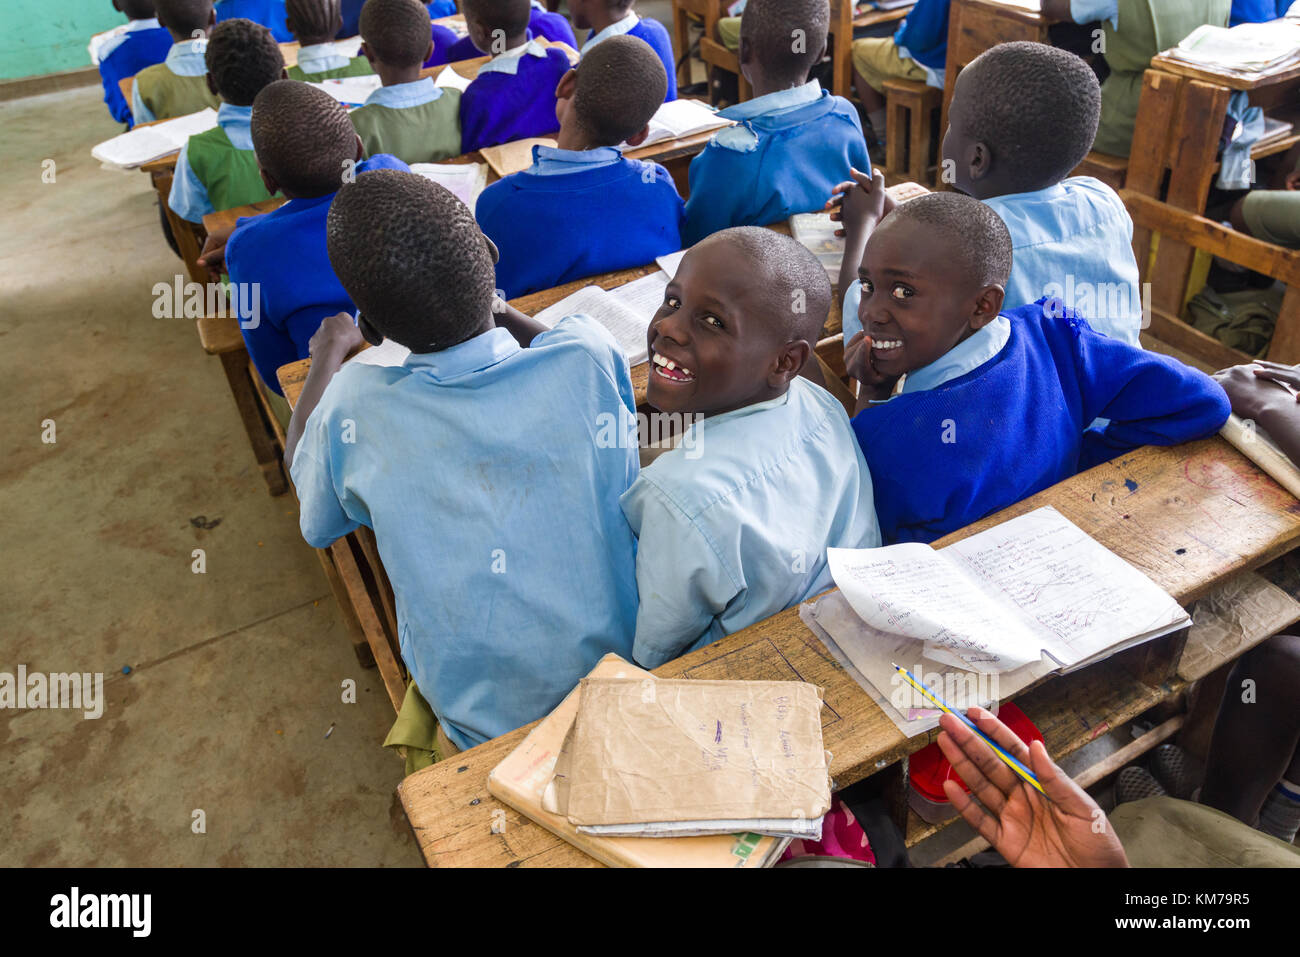 Secondary school children in uniform sat at desks smiling back at the camera during class, Nairobi, Kenya Stock Photo